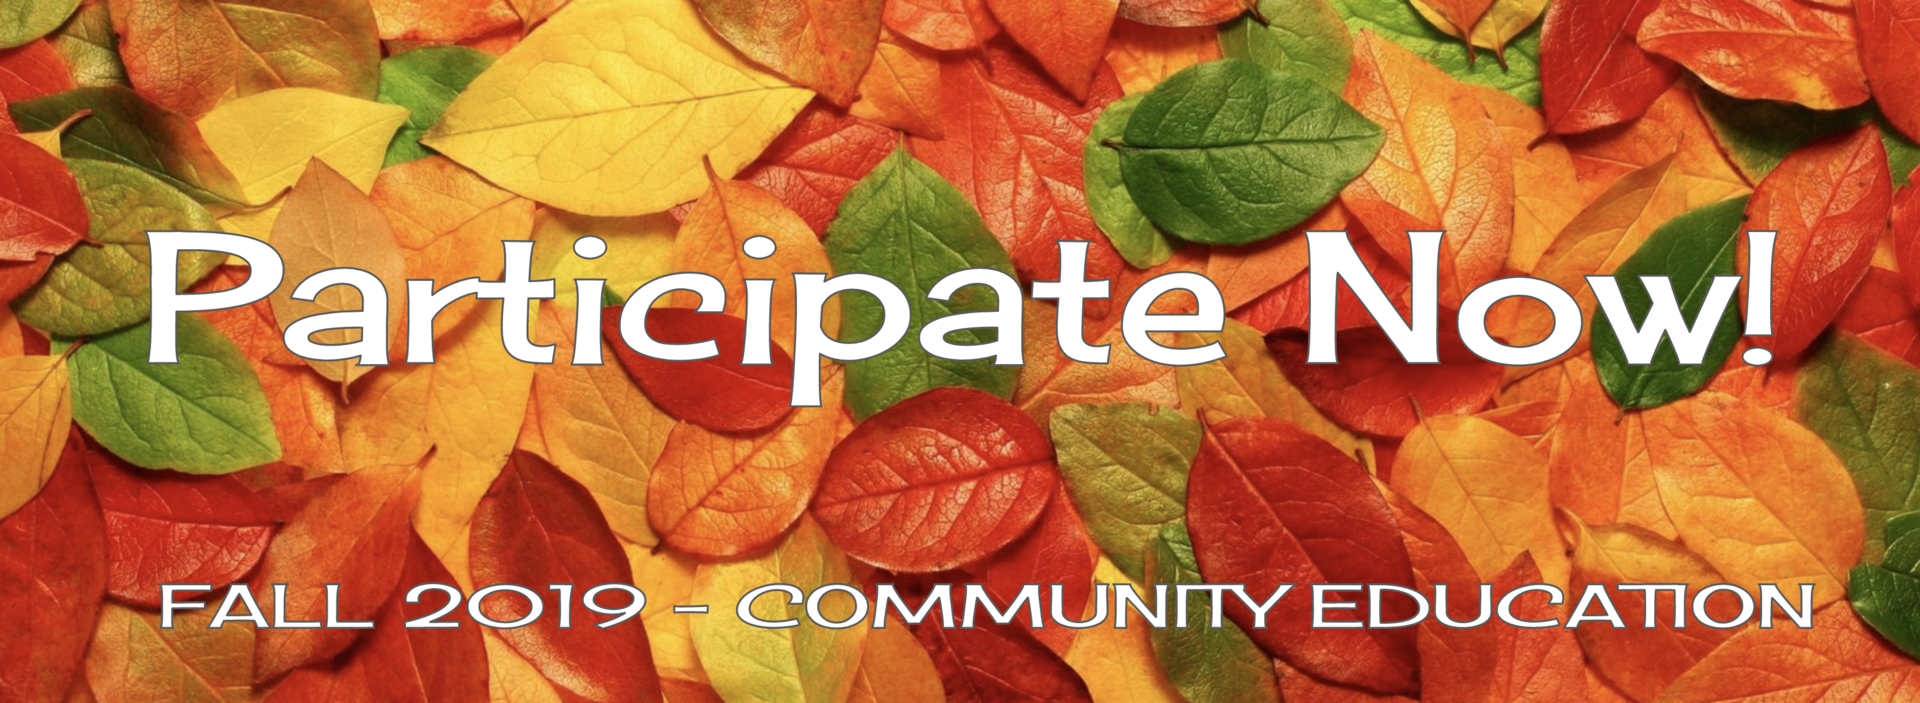 Fall Leaves scene with Community Education message to 'Participate Now!' posted over the leaves.